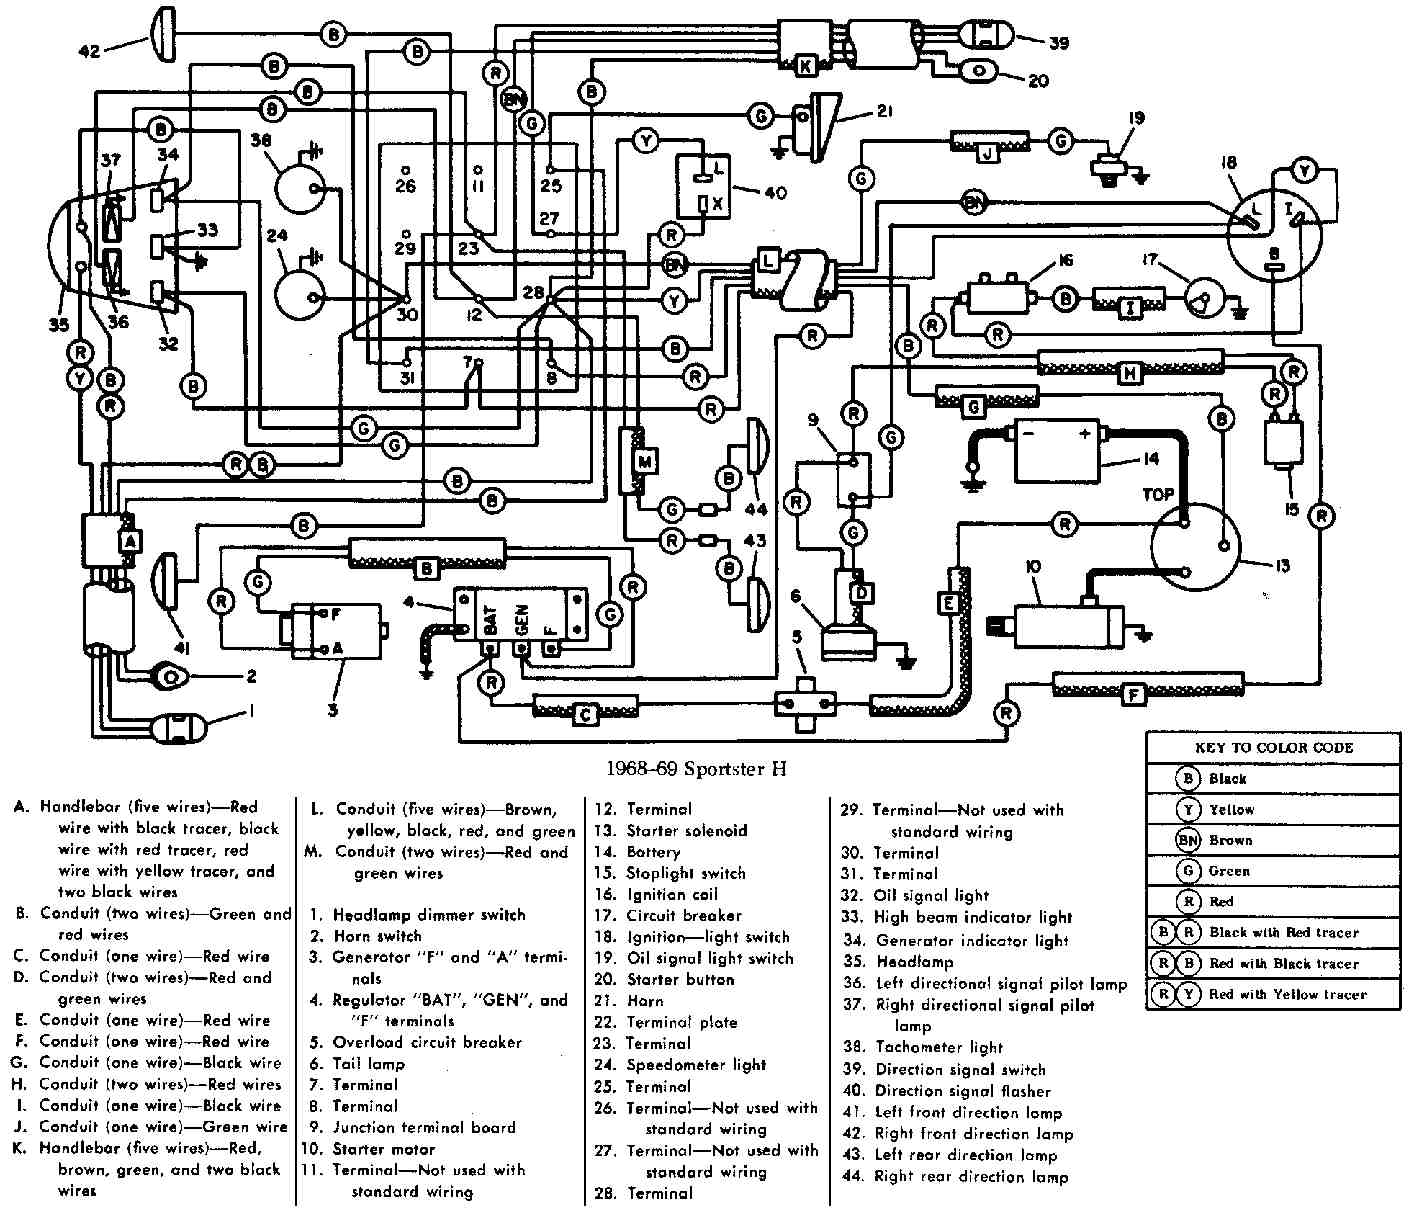 chrysler 300 electronic ignition wiring diagram with 96 Sportster Wiring Diagram on RepairGuideContent in addition 96 Sportster Wiring Diagram in addition 1973 Ranchero Electrical Wiring Diagrams Ford besides Dixie Chopper Ignition Switch Wiring Diagram besides 351m Alternator Wiring Diagram.